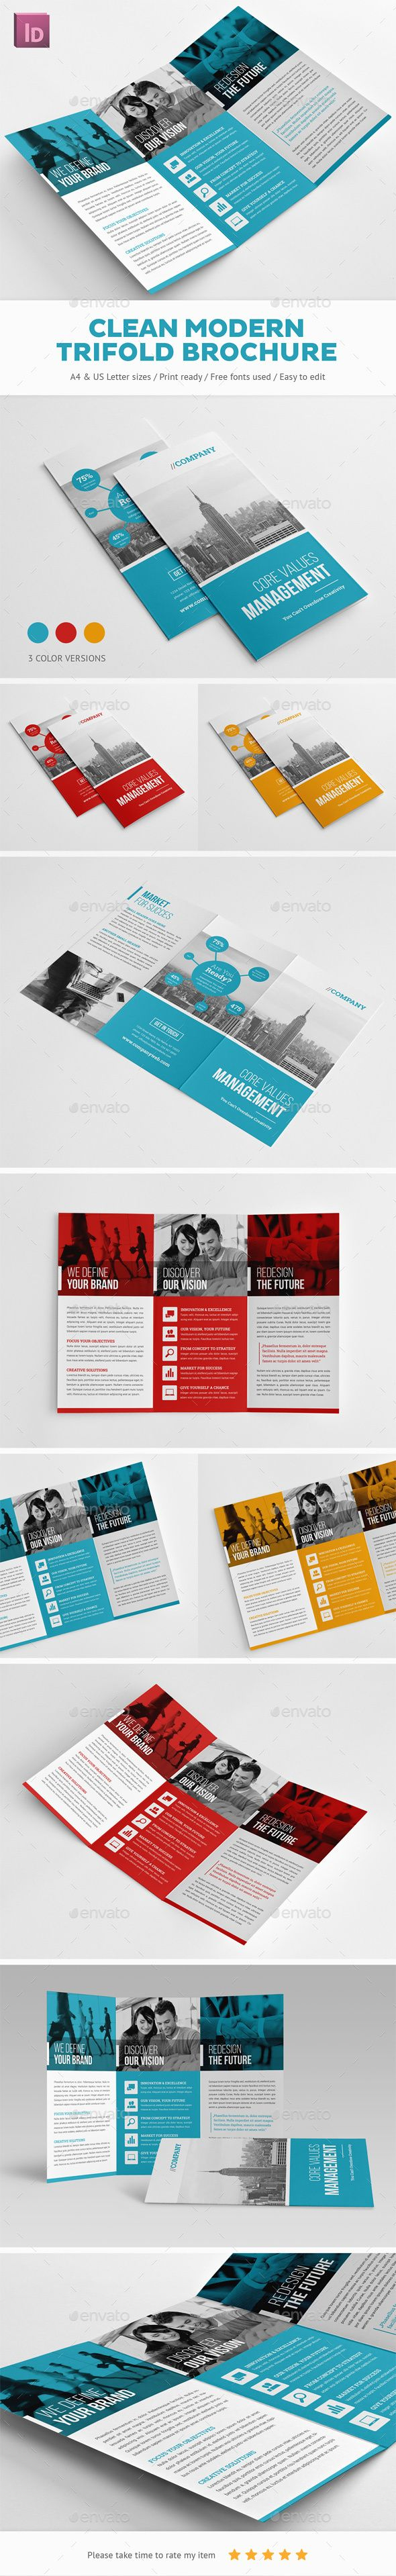 Clean Modern Trifold Brochure Design - Corporate Brochures Template InDesign IND...